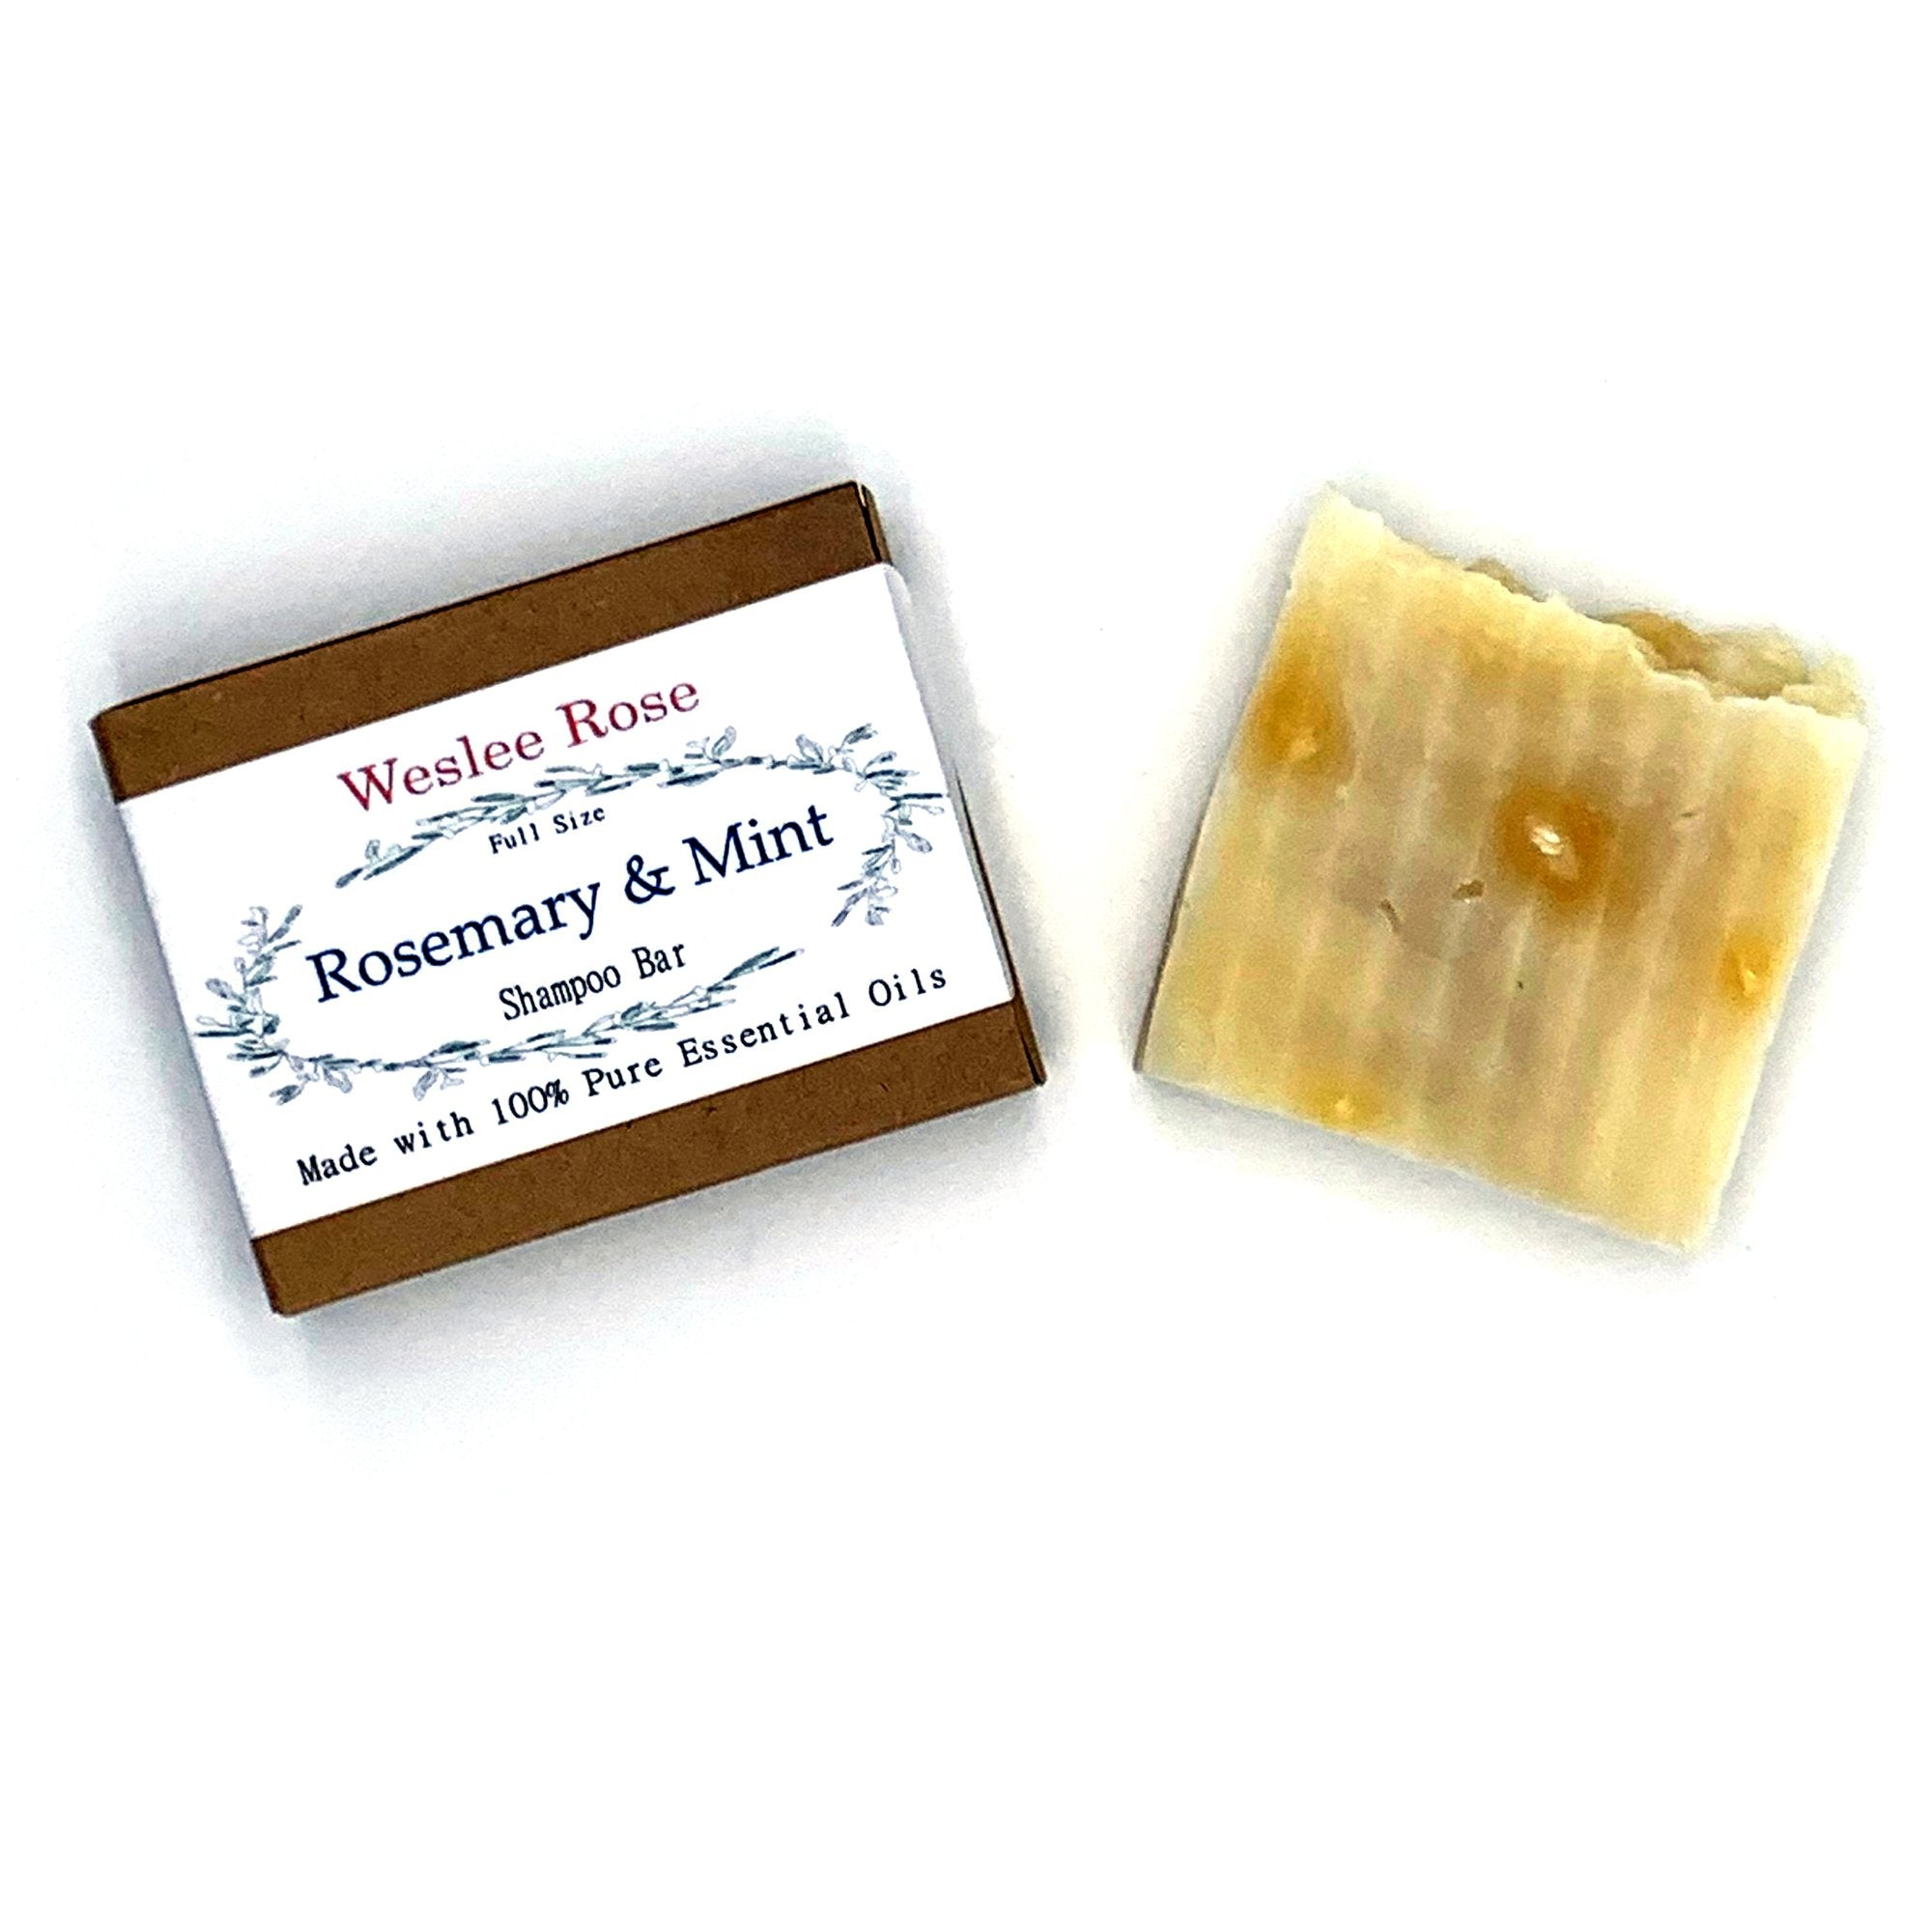 Zero waste, Vegan, No added Fragrances, 100% Pure Essential Oils, Biodegradable, Lake and Stream Friendly, Non Toxic Shampoo Bar. Rosemary Mint.